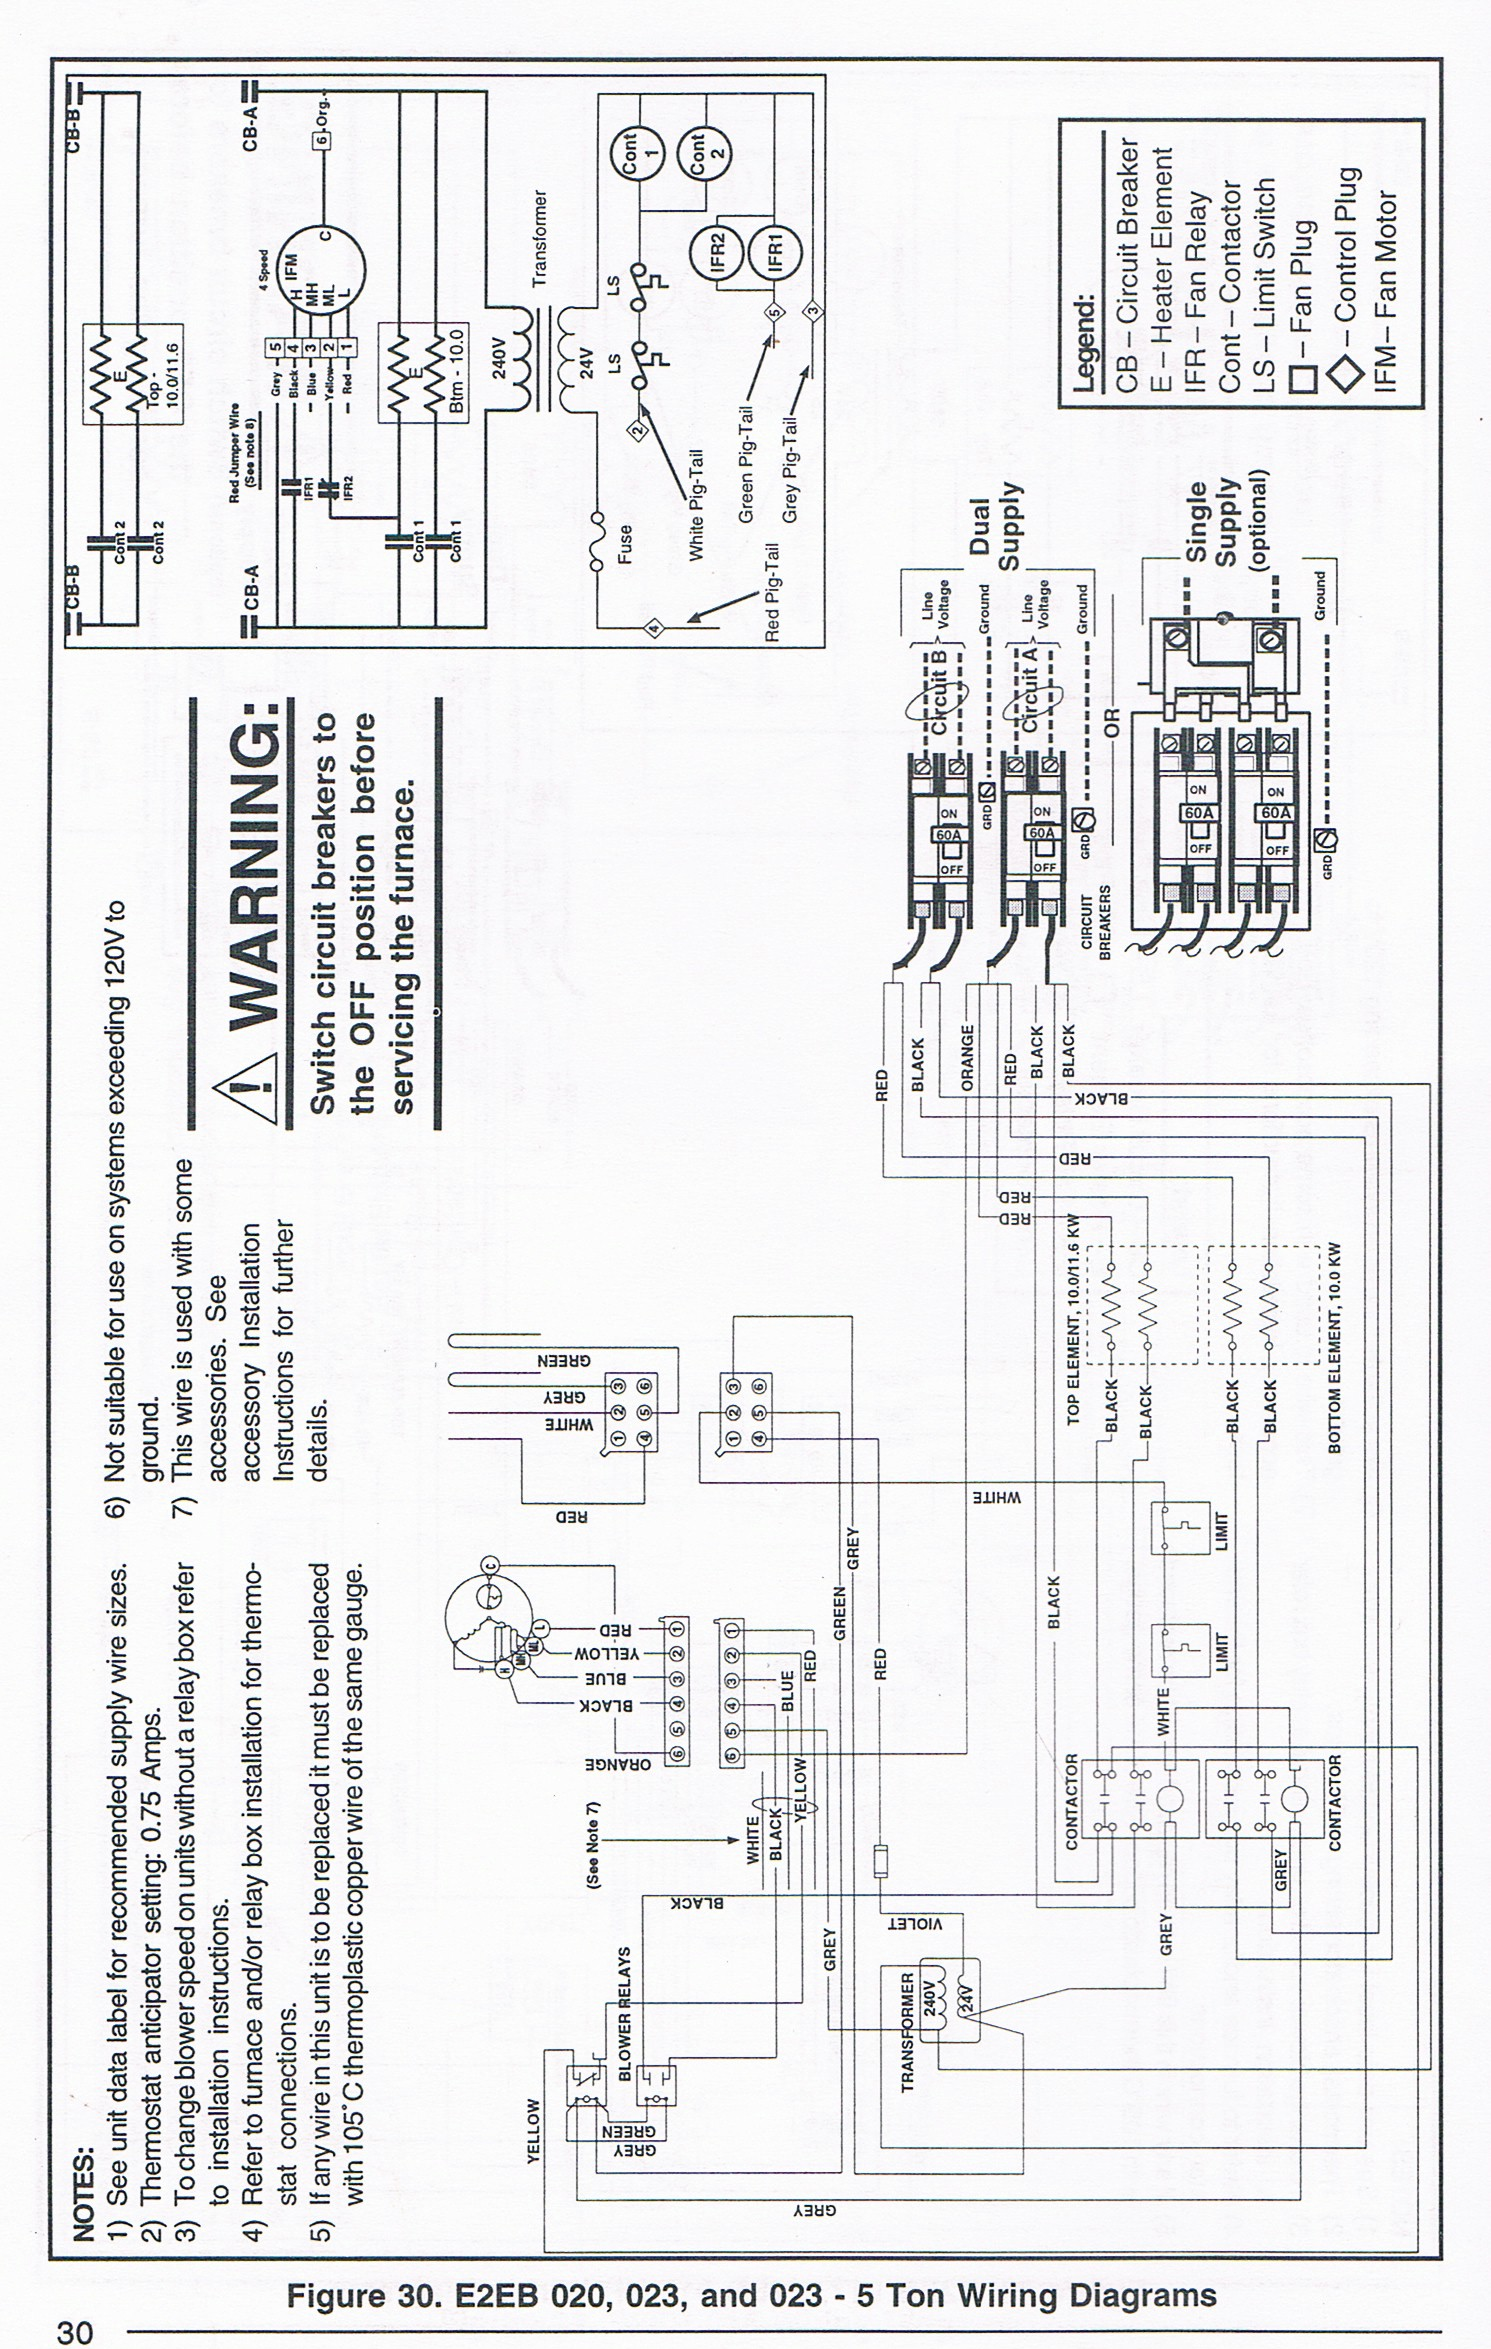 2011 05 04_234443_e2eb wiring diagram for nordyne electric furnace readingrat net nordyne wiring diagram at reclaimingppi.co